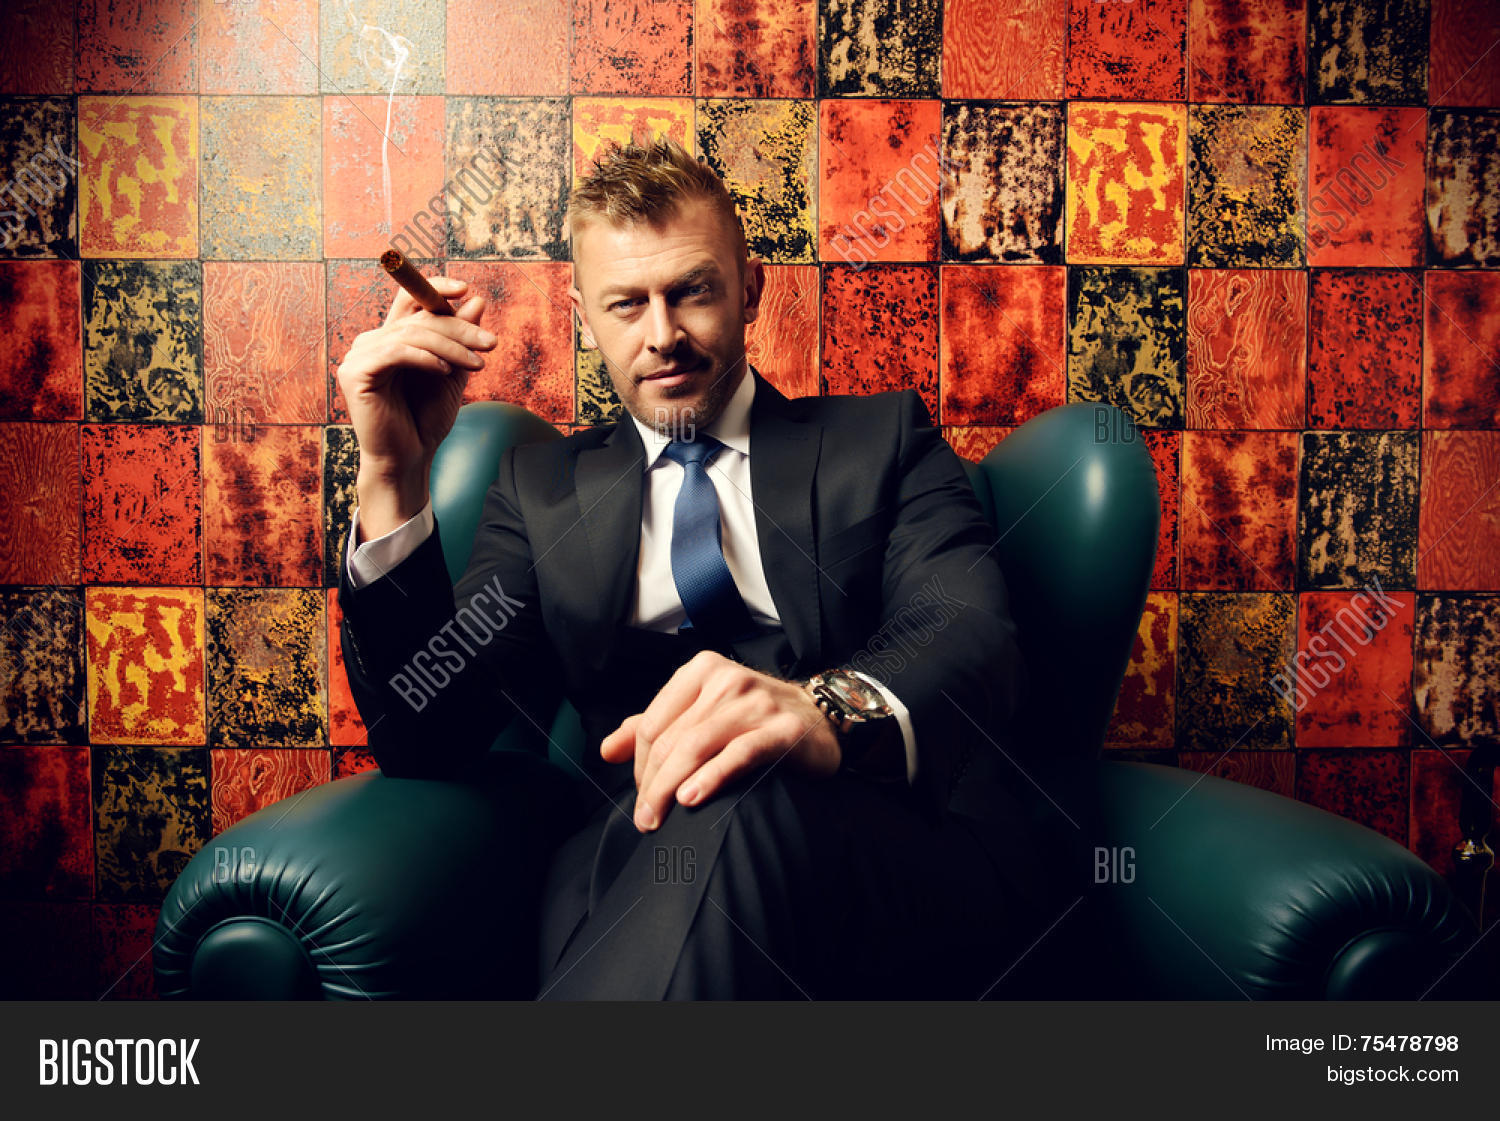 handsome mature man elegant suit image & photo | bigstock